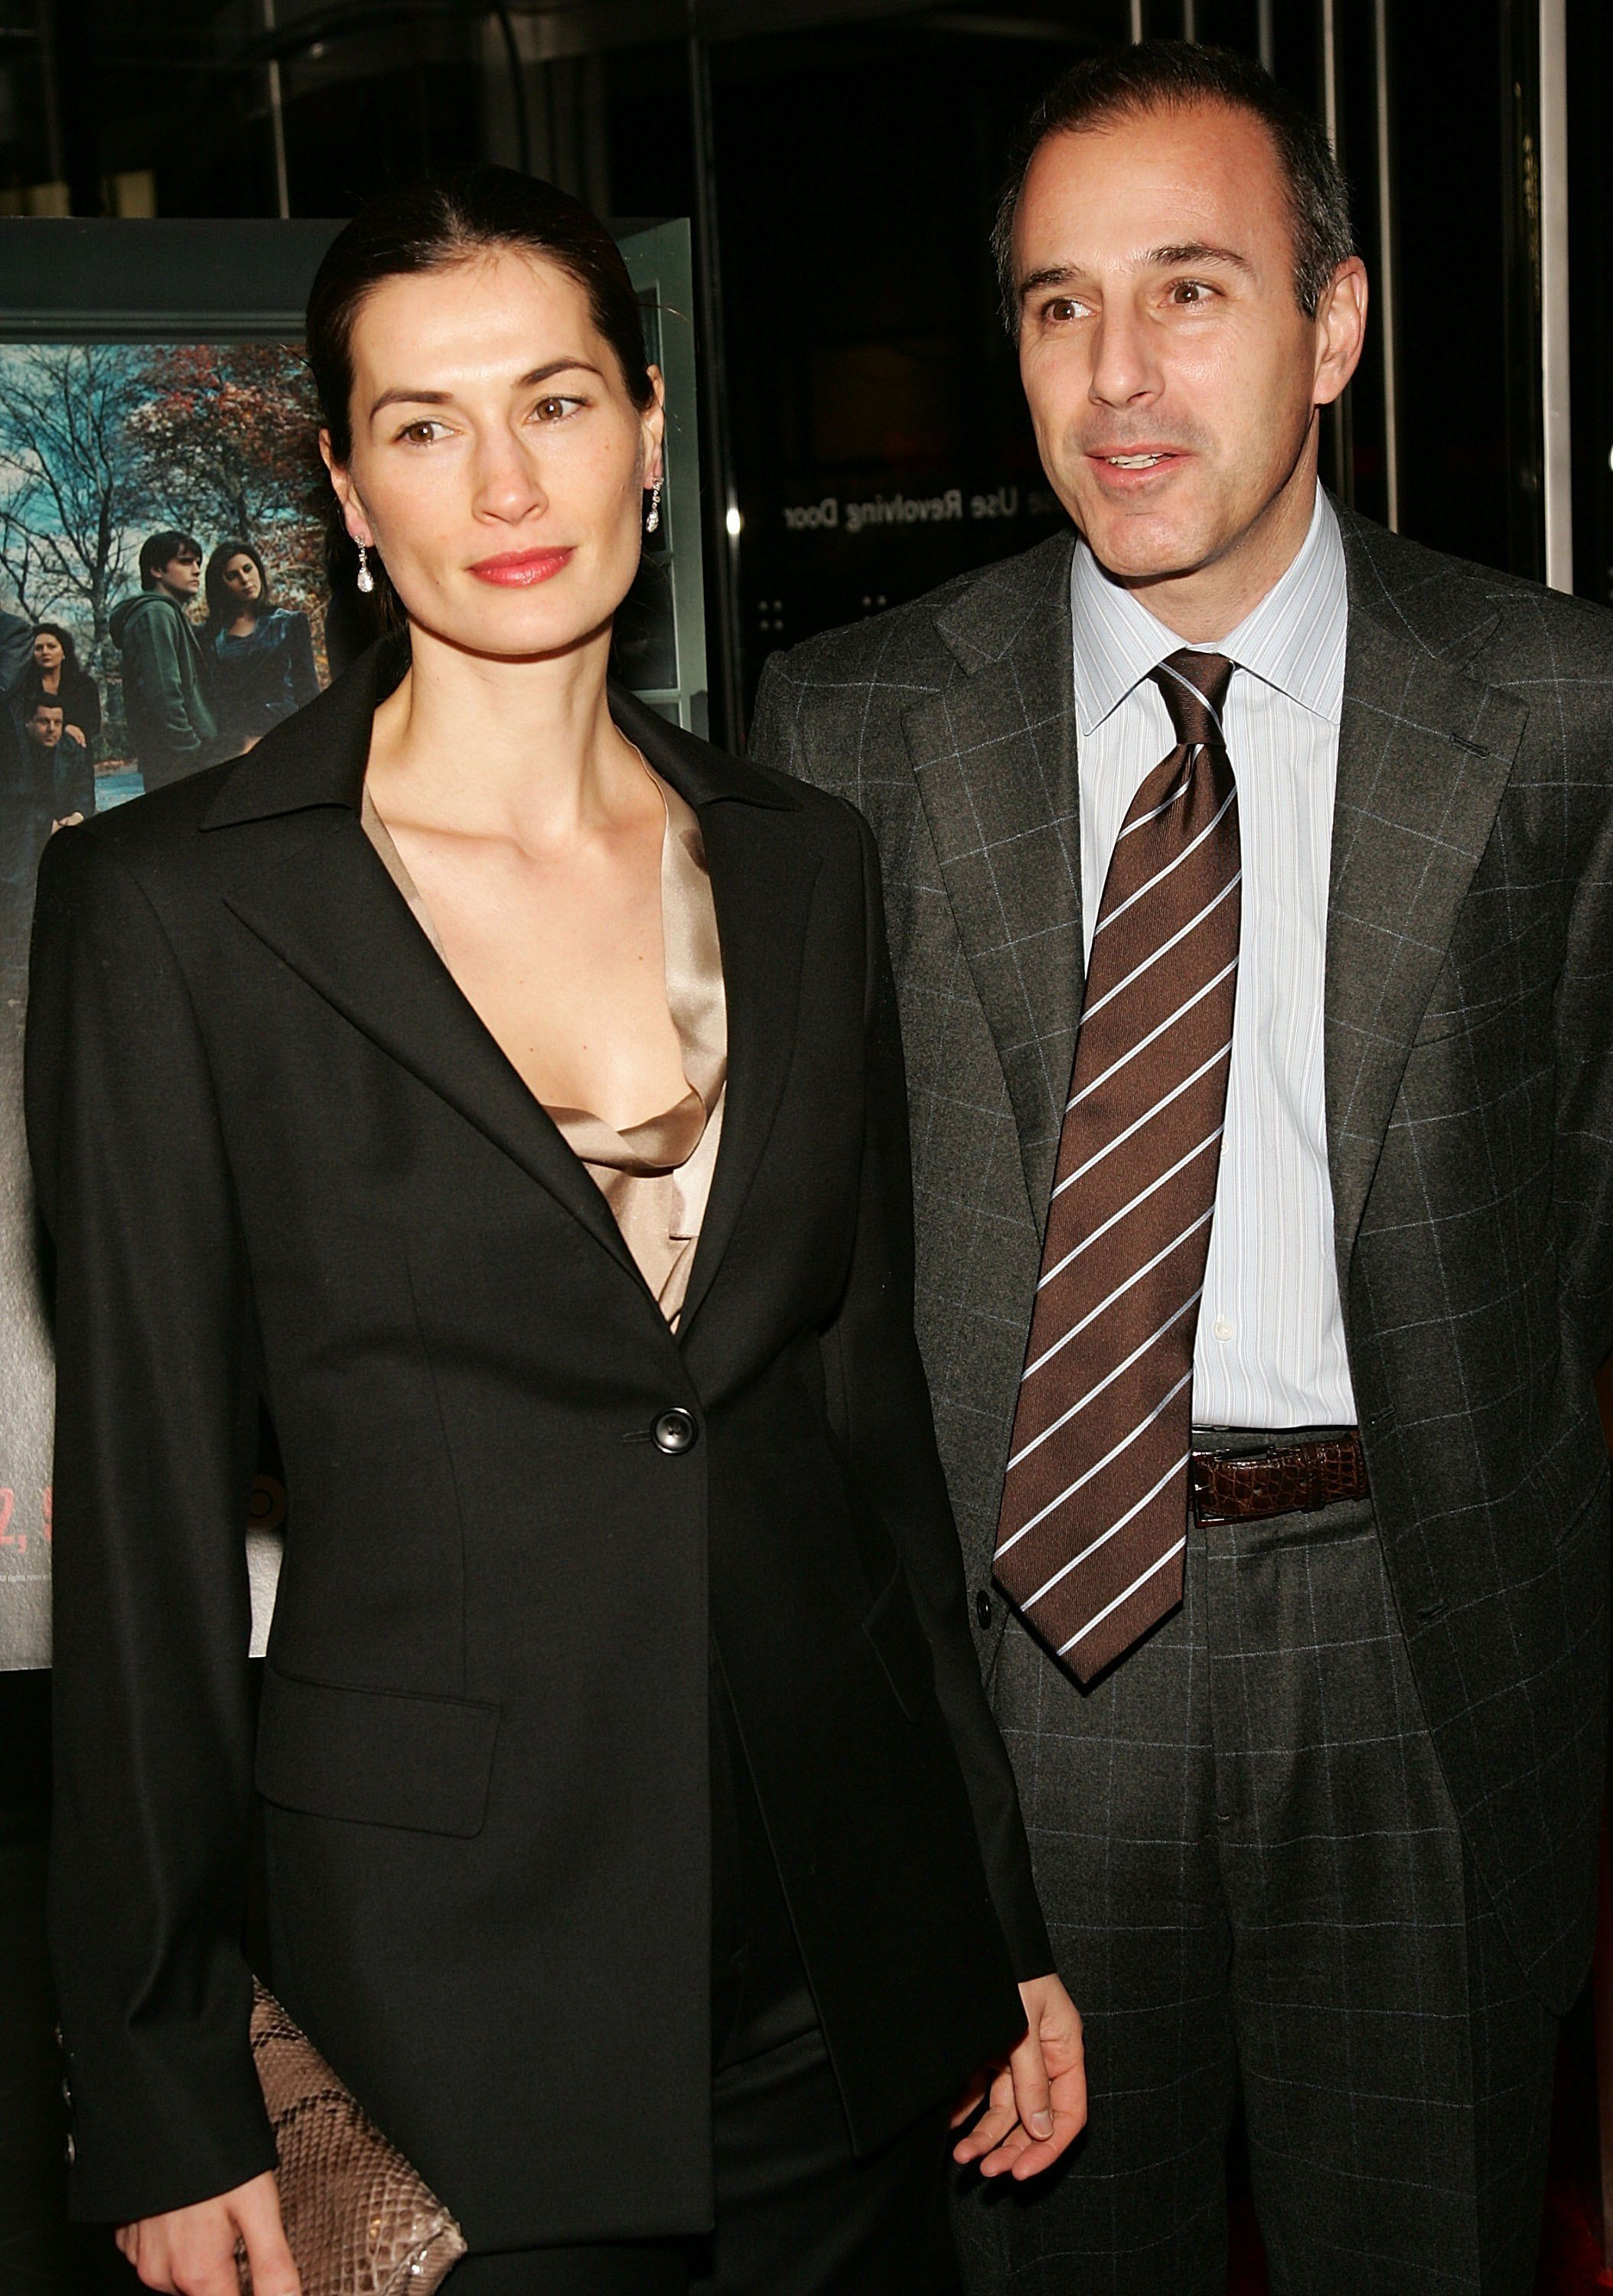 """Matt Lauer and wife Annette Roque at the sixth season premiere of the HBO series """"The Sopranos.""""   Source: Getty Images"""